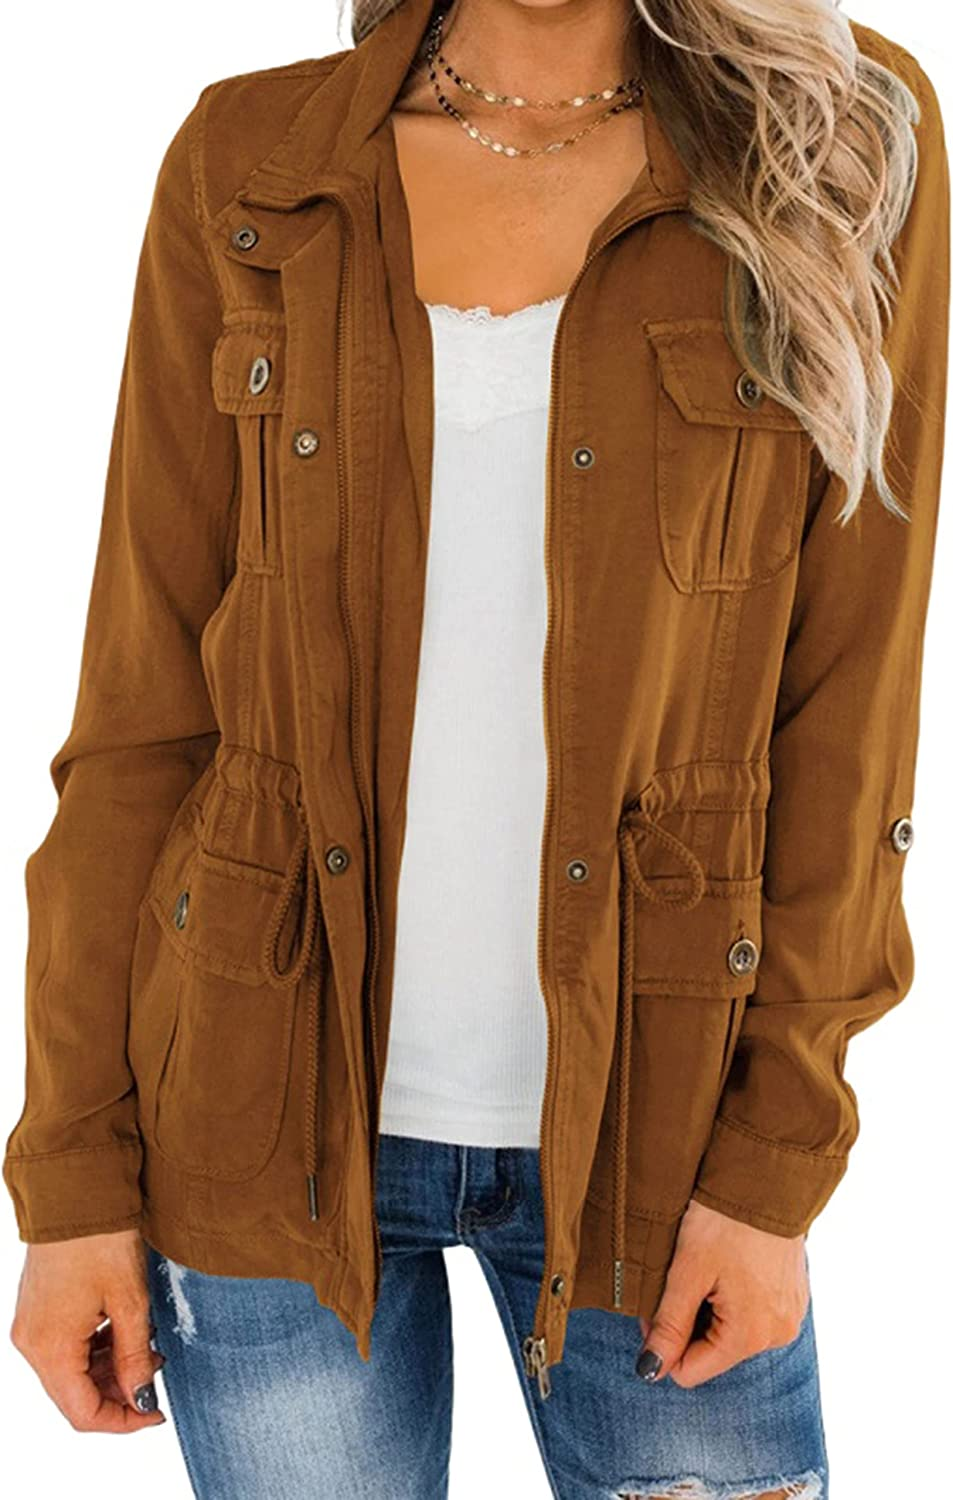 UANEO Womens Military Jacket Zip Up Button Down Safari Utility Coat Outerwear with Pockets